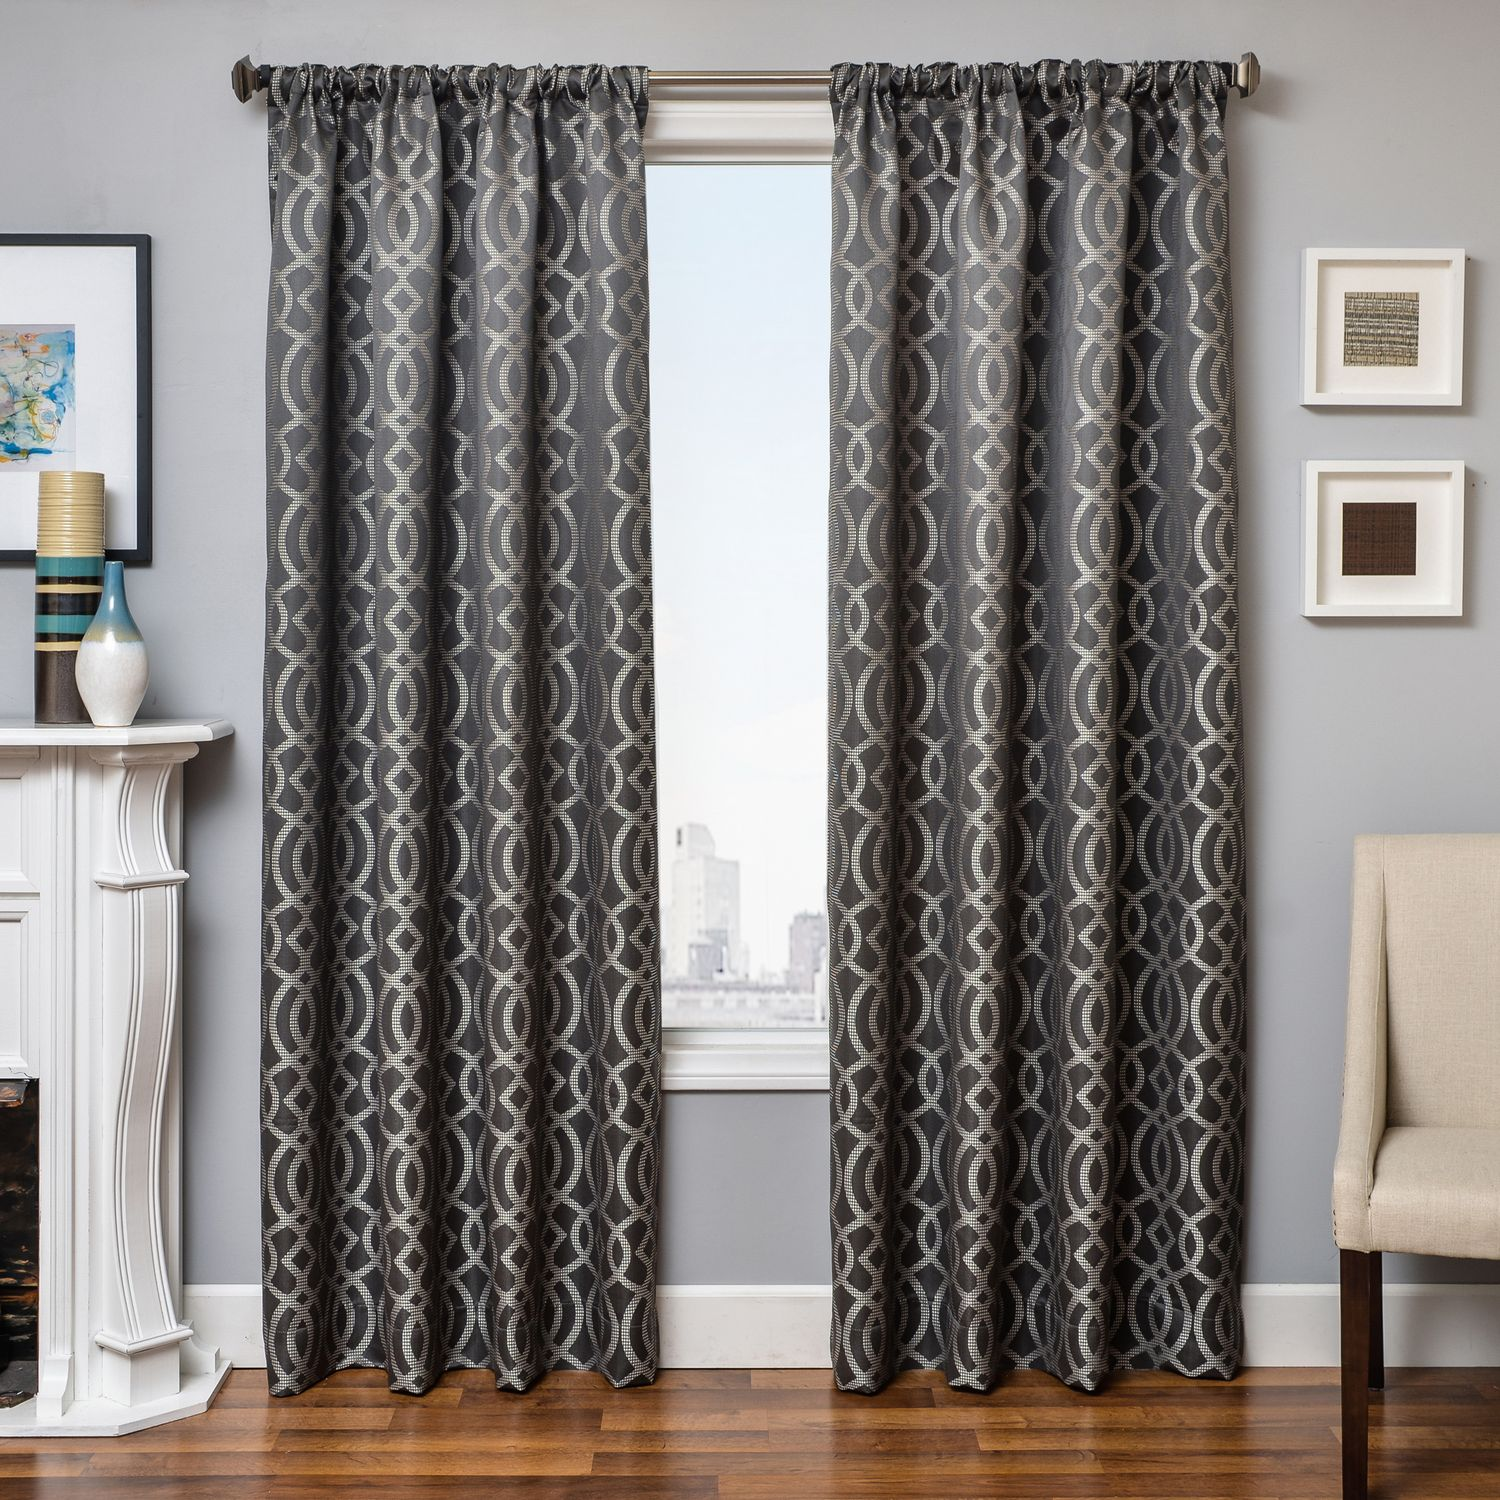 Softline Home Fashions Exeter Drapery Panels in Pewter color. Pewter